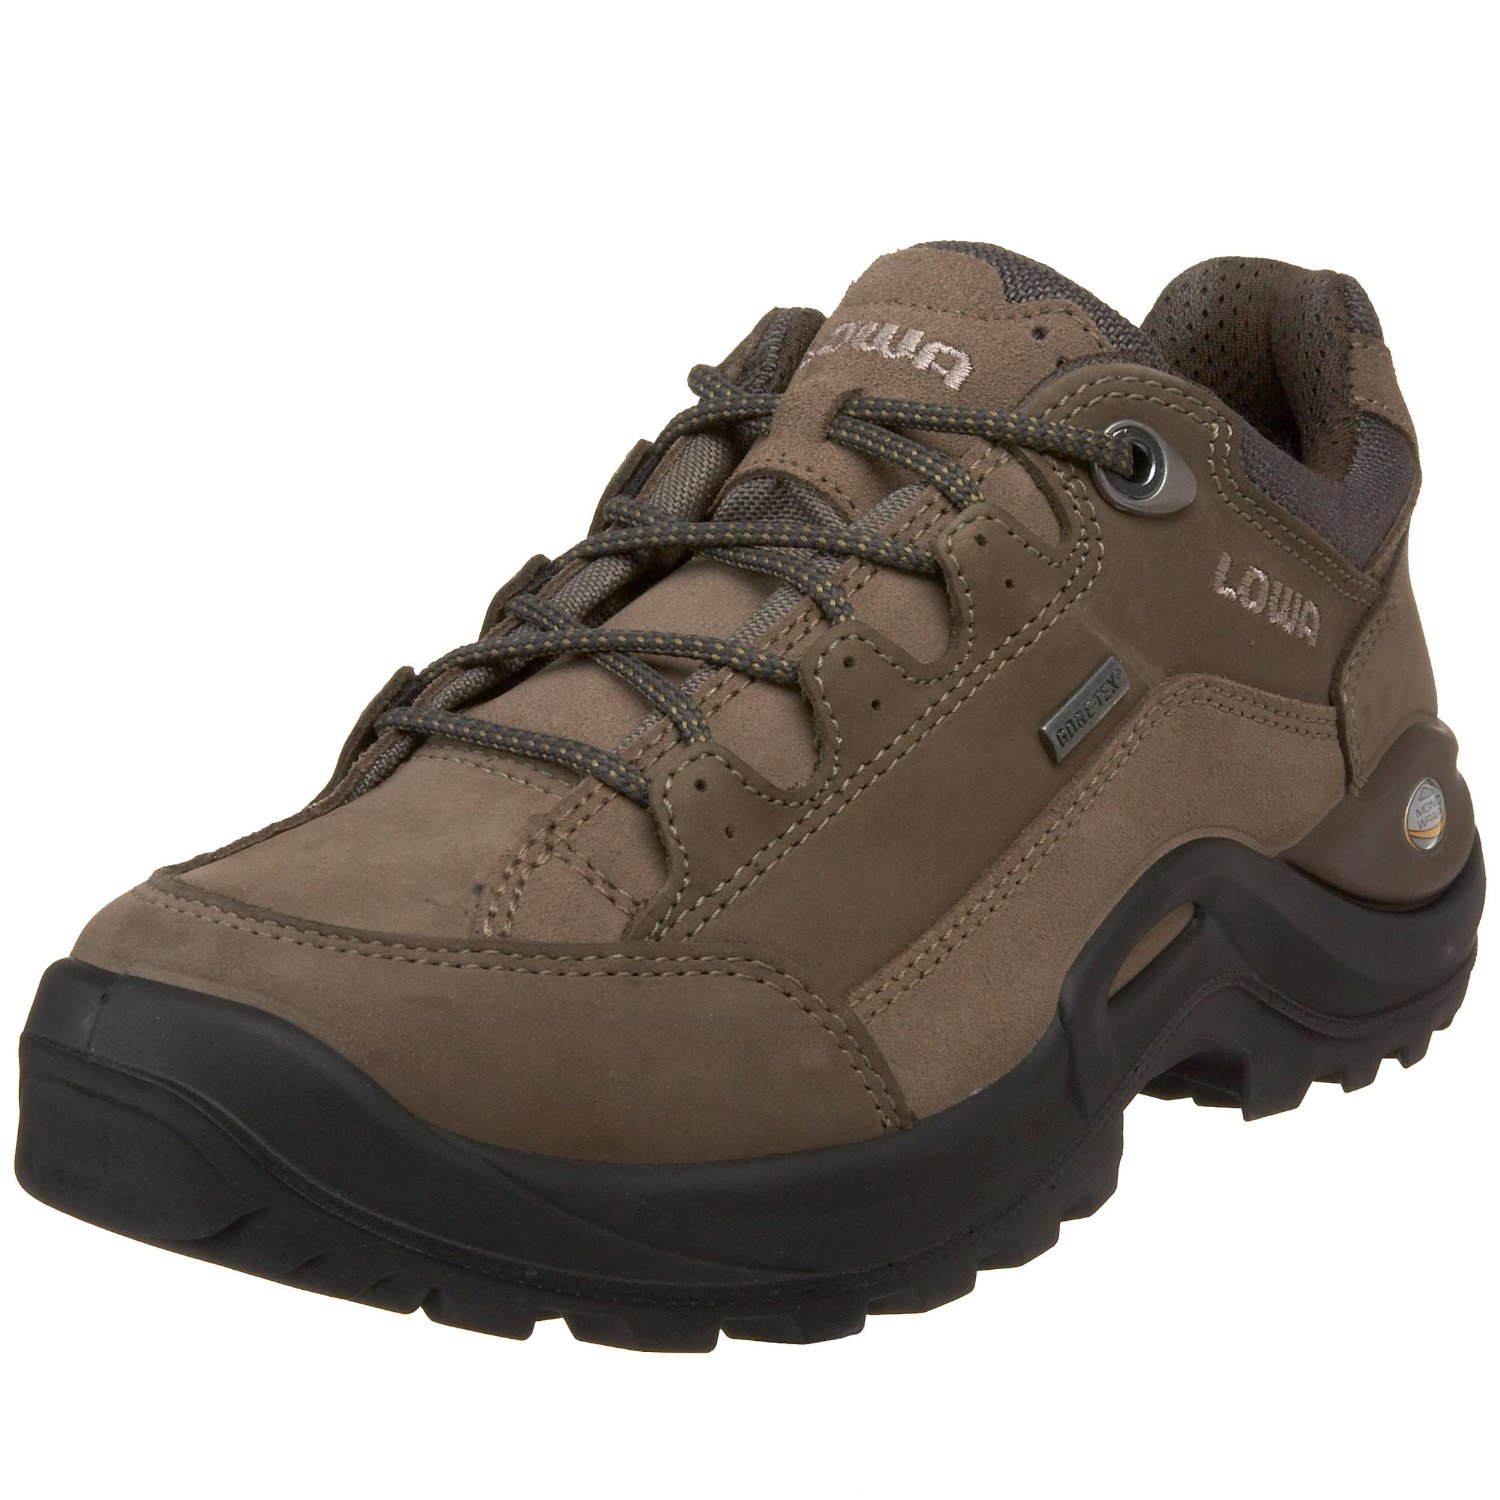 hiking shoes here lowa women 39 s renegade ii gtx lo hiking. Black Bedroom Furniture Sets. Home Design Ideas